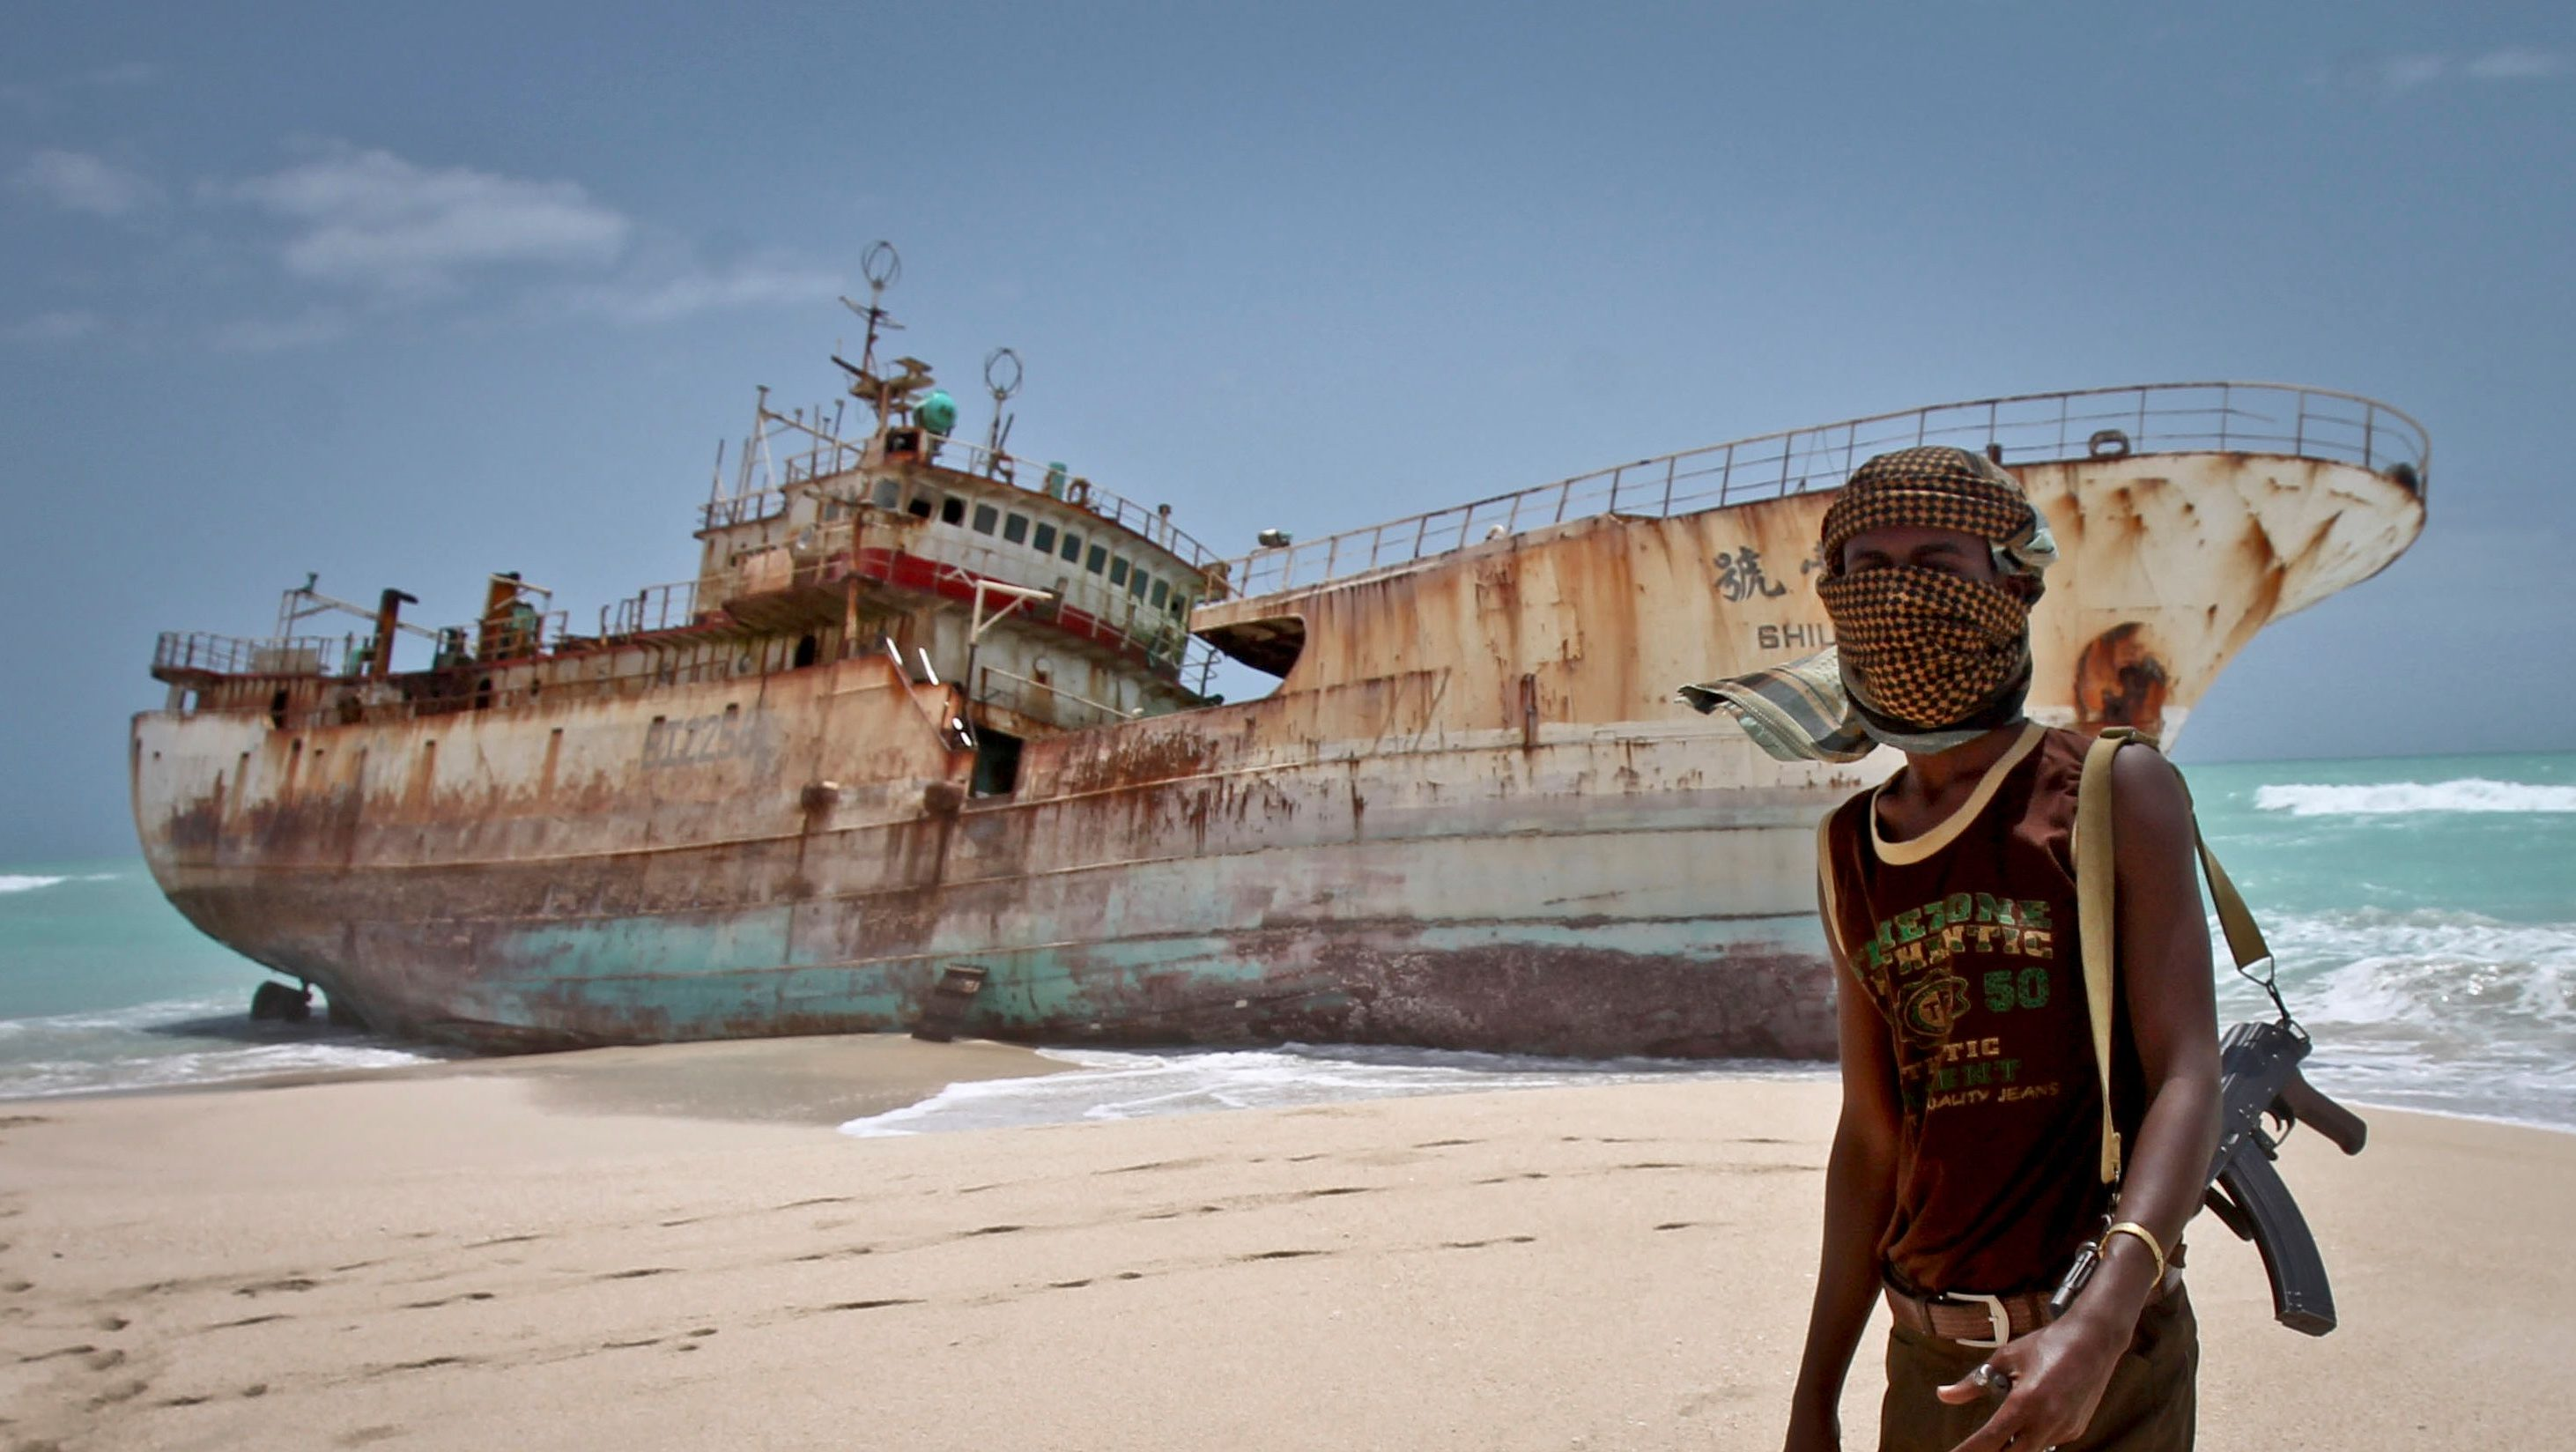 Piracy Made A Strong Comeback In Somalia In 2017